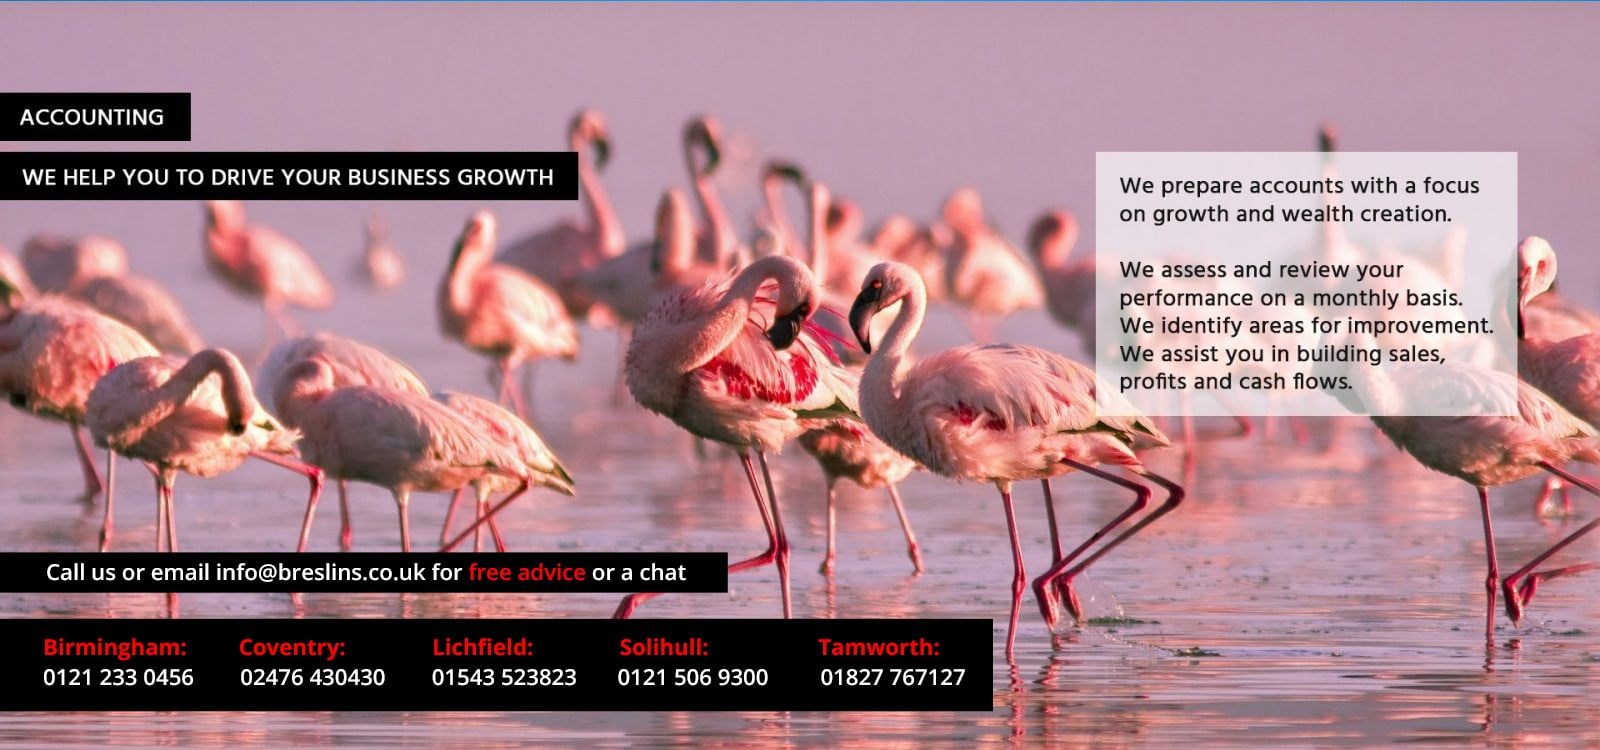 Accounts services poster with flamingos in background